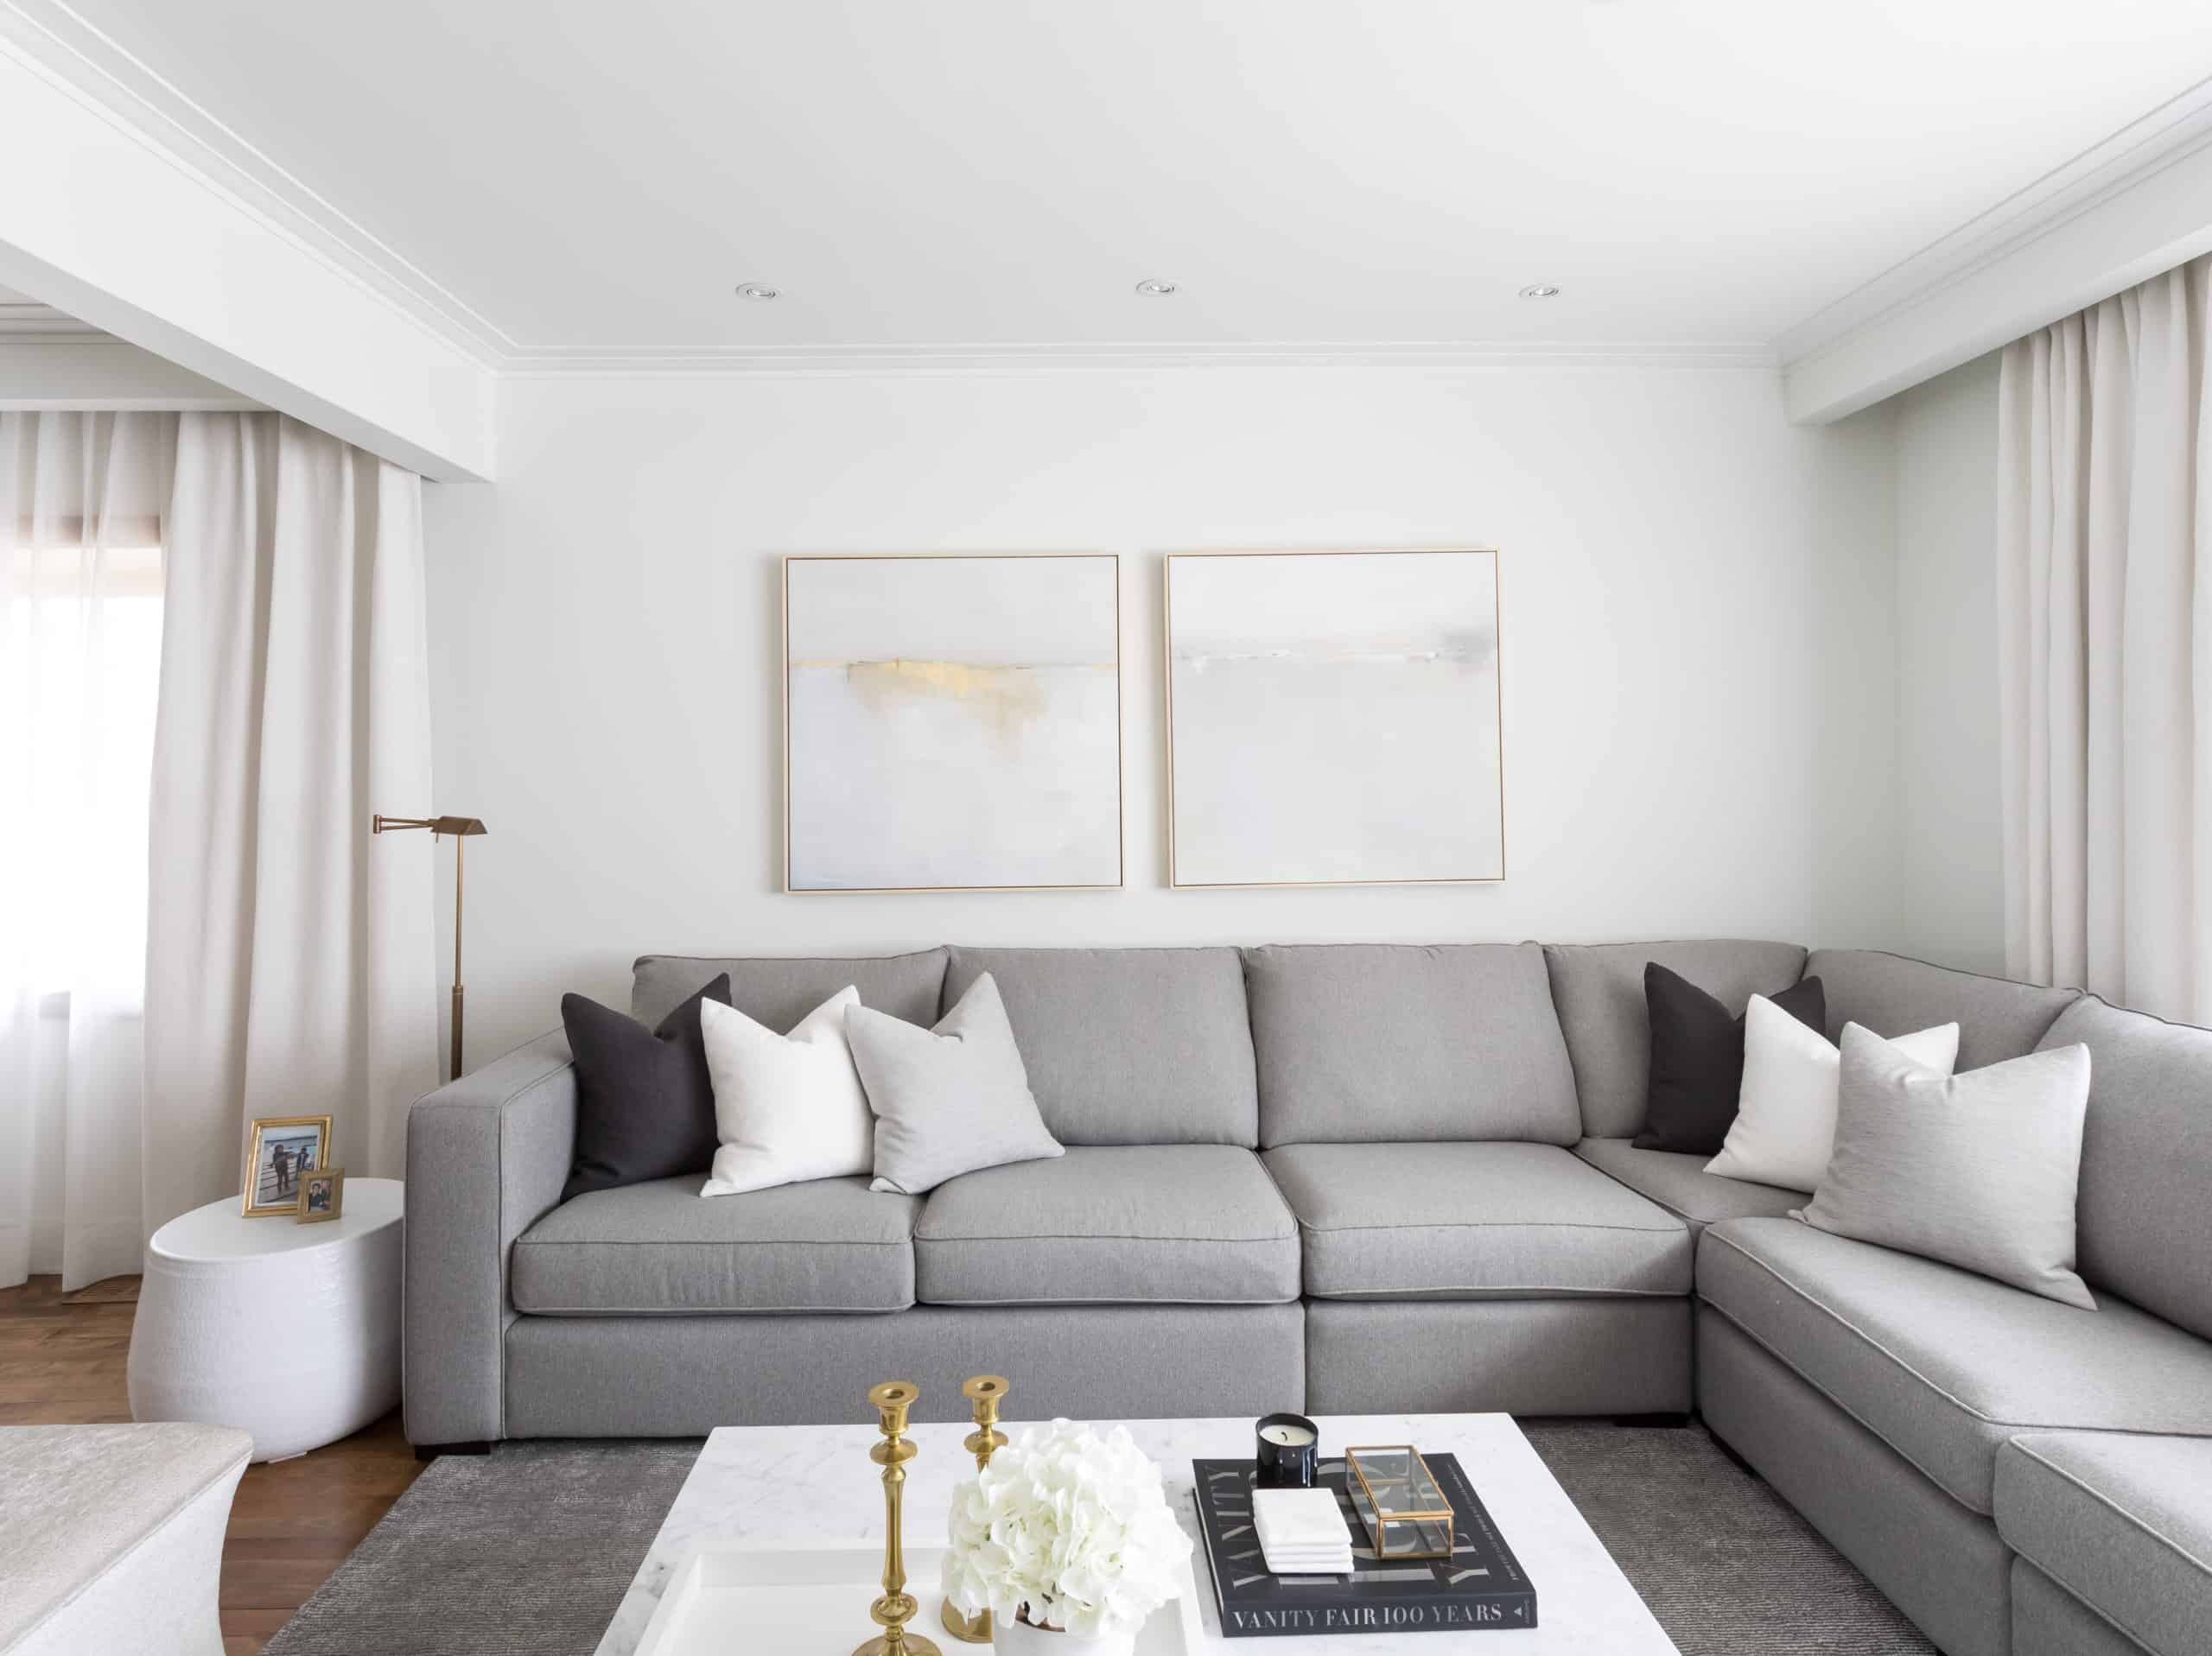 Large, gray corner couch in the corner of the living room